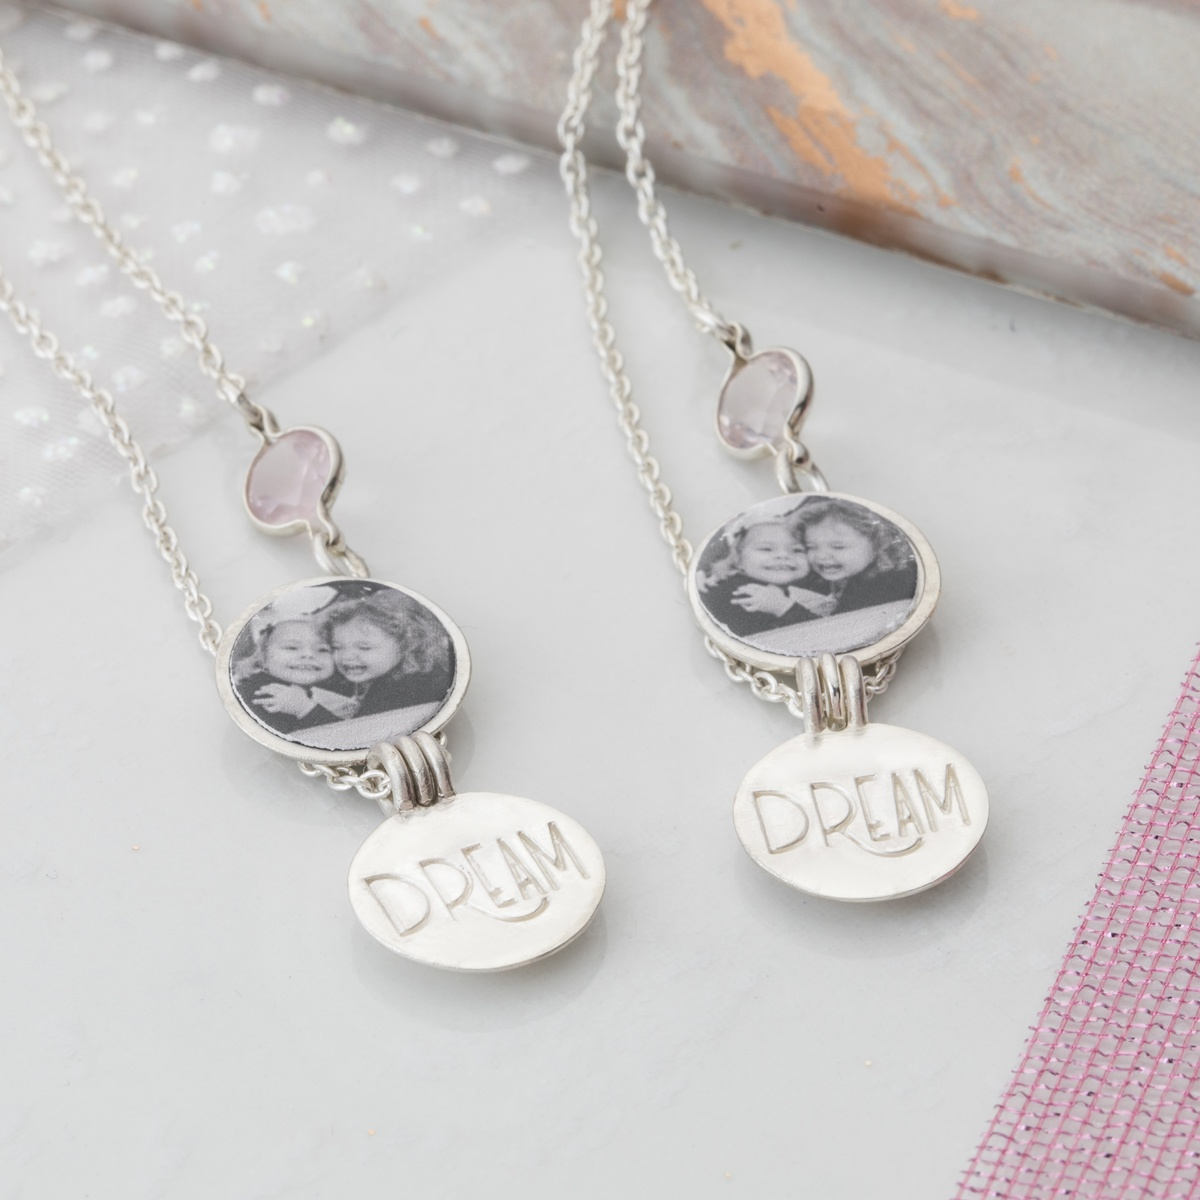 Matching Locket set for your sister or best friend